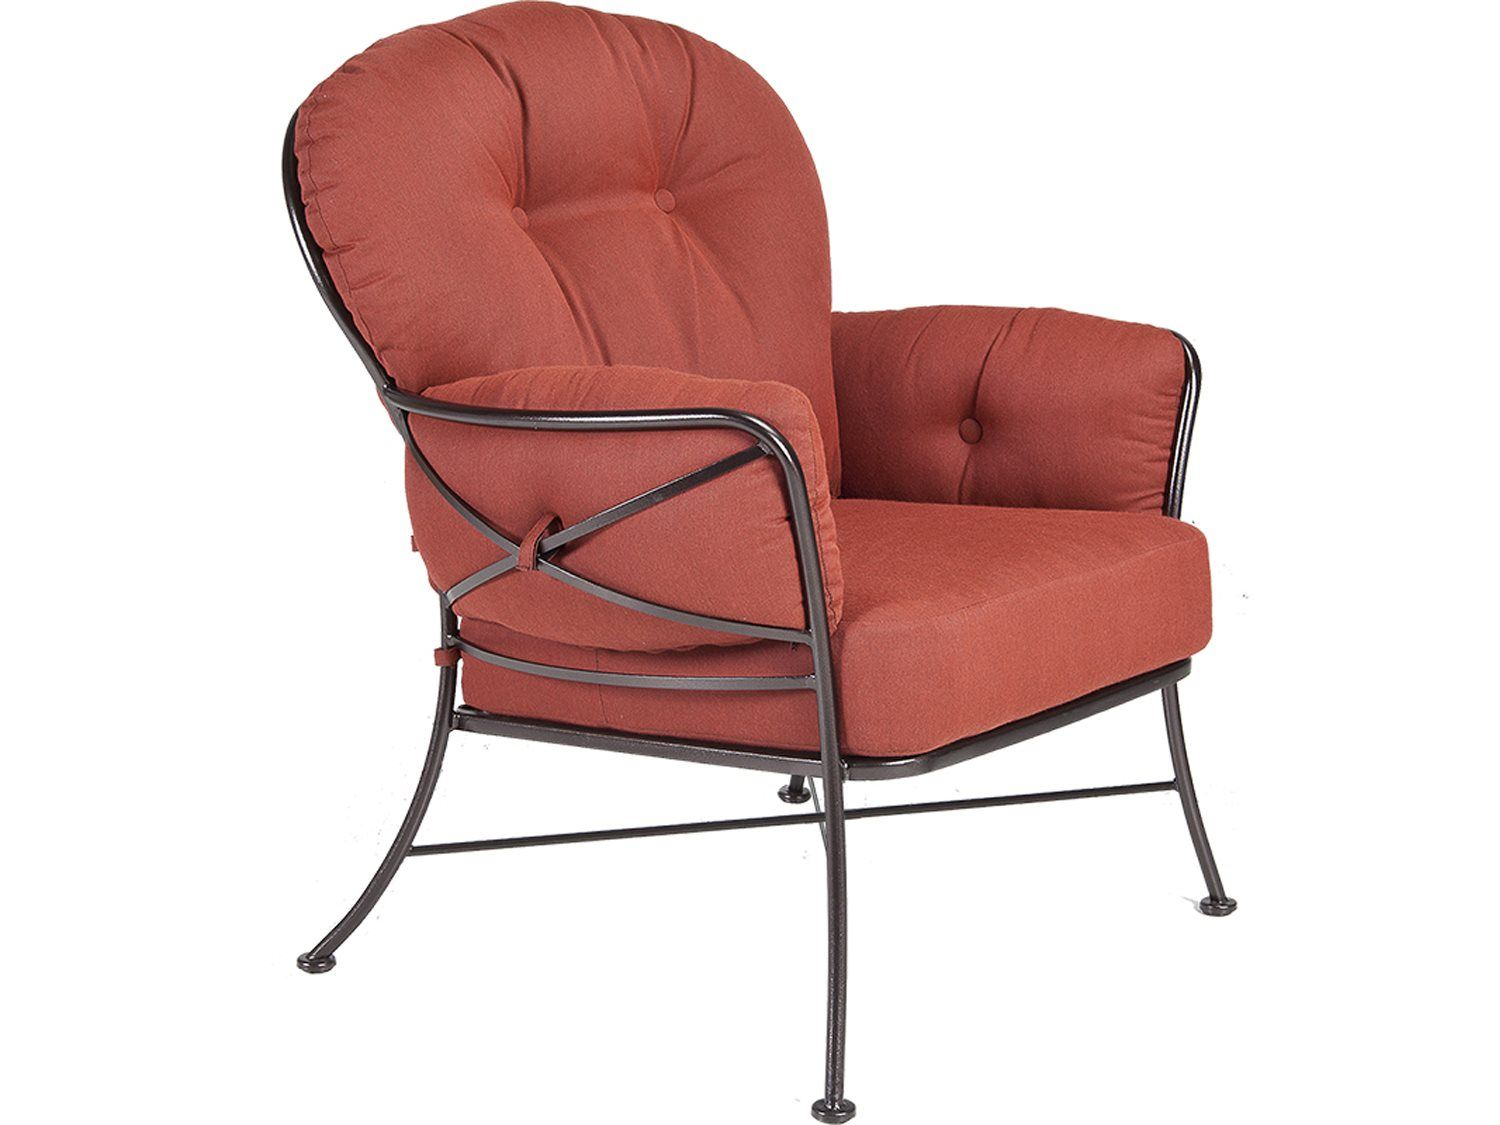 Ow lee cambria wrought iron lounge chair decorate pinterest